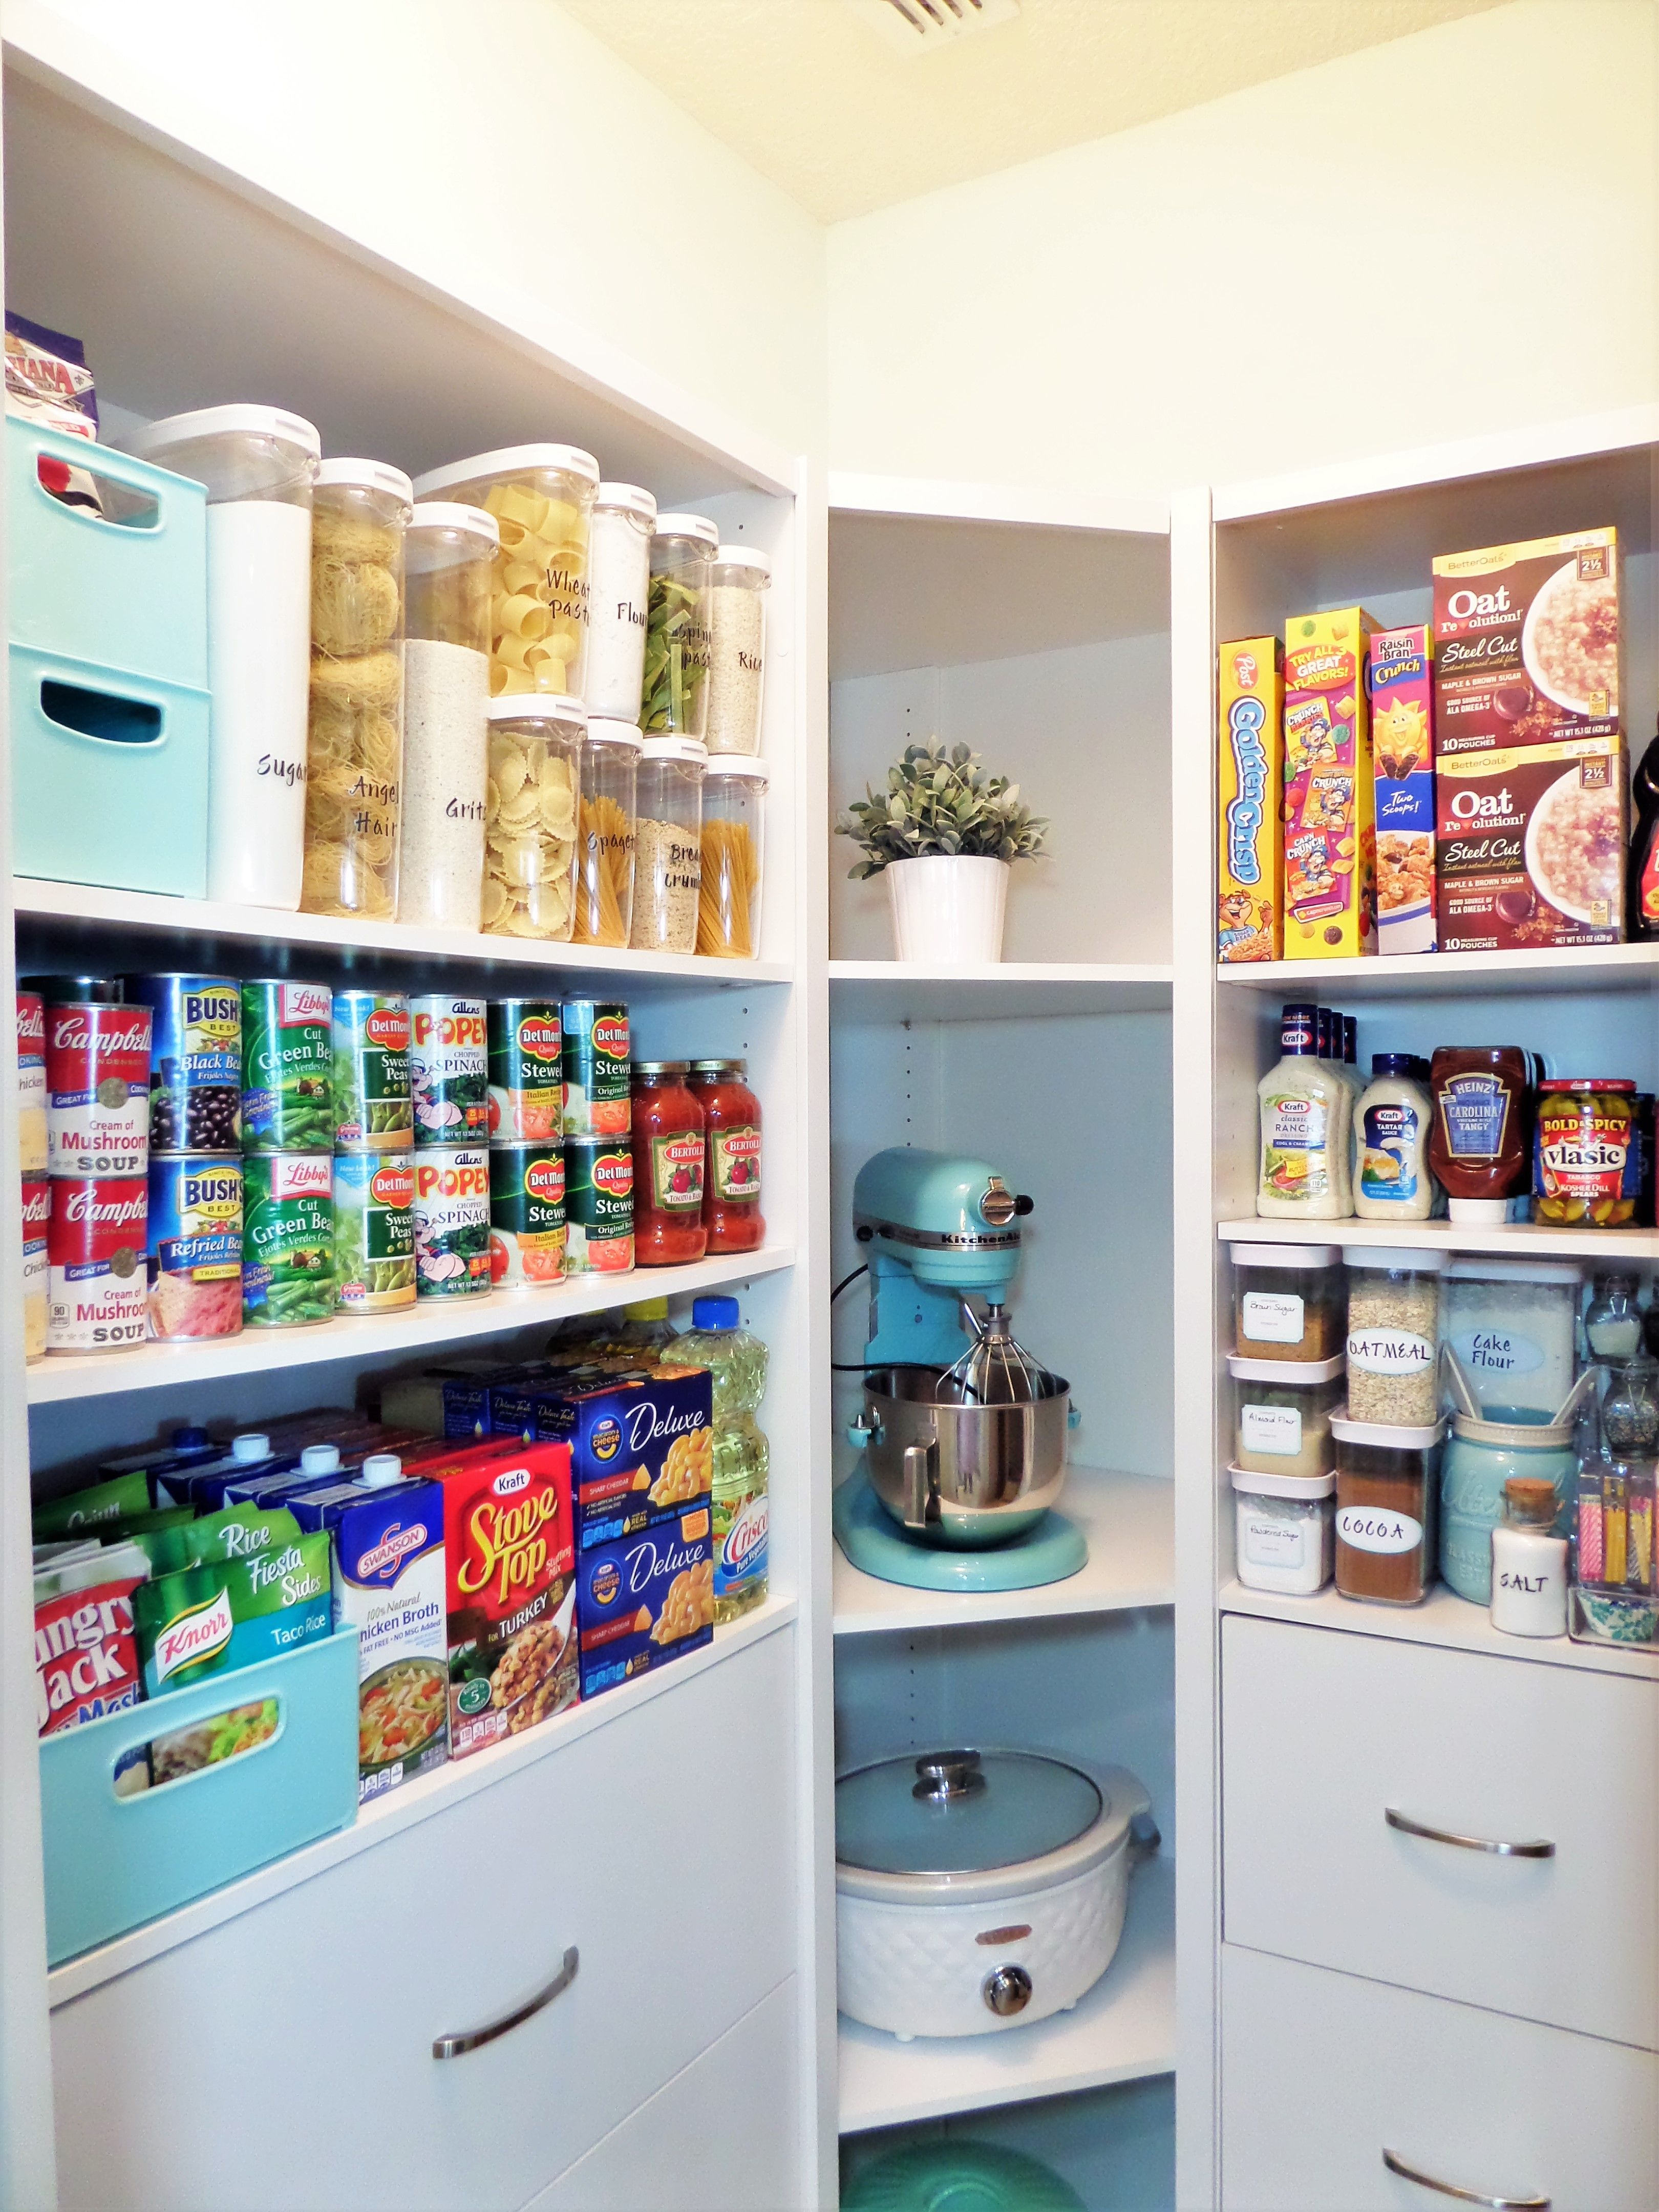 Charmant Closetmaid Space Creations, Has Changed Our Pantry For The Better, Whether  You Have A Small Or Large Closet. A Well Stocked And Organized Pantry Can  Make ...